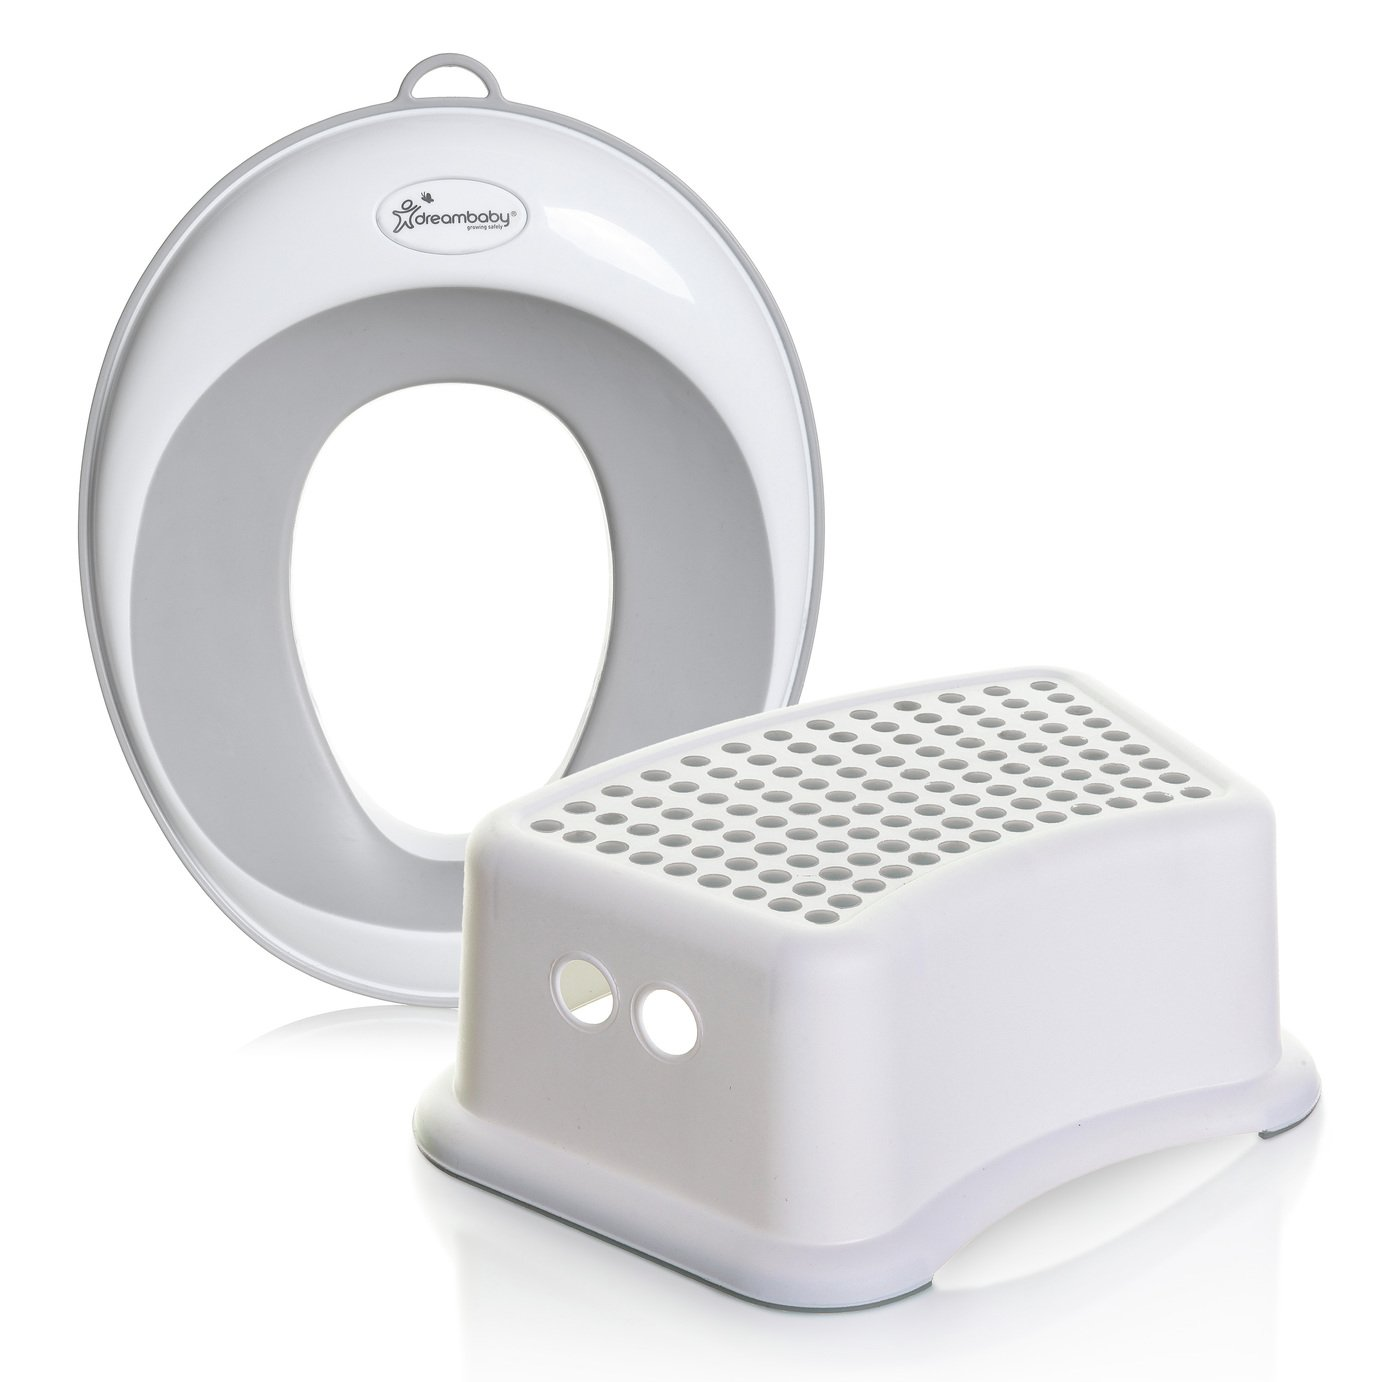 Dreambaby Ezy Fit Toilet Seat and Step Stool